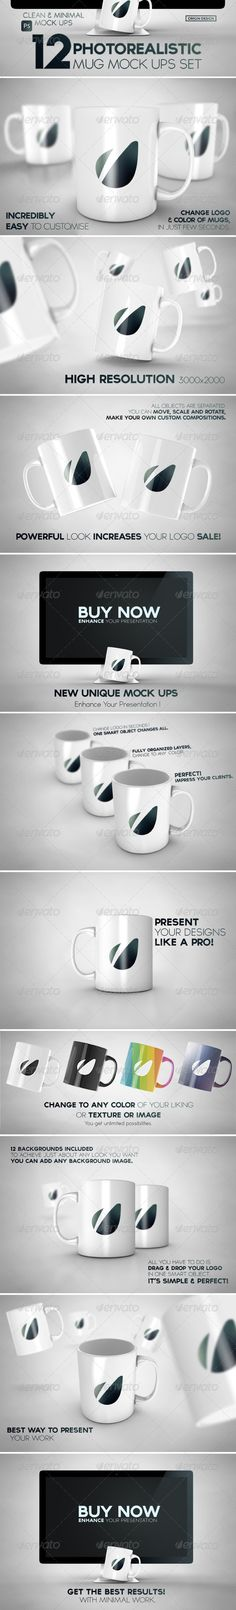 12 Photorealistic Mug Mockups Set - Logo Product Mock-Ups